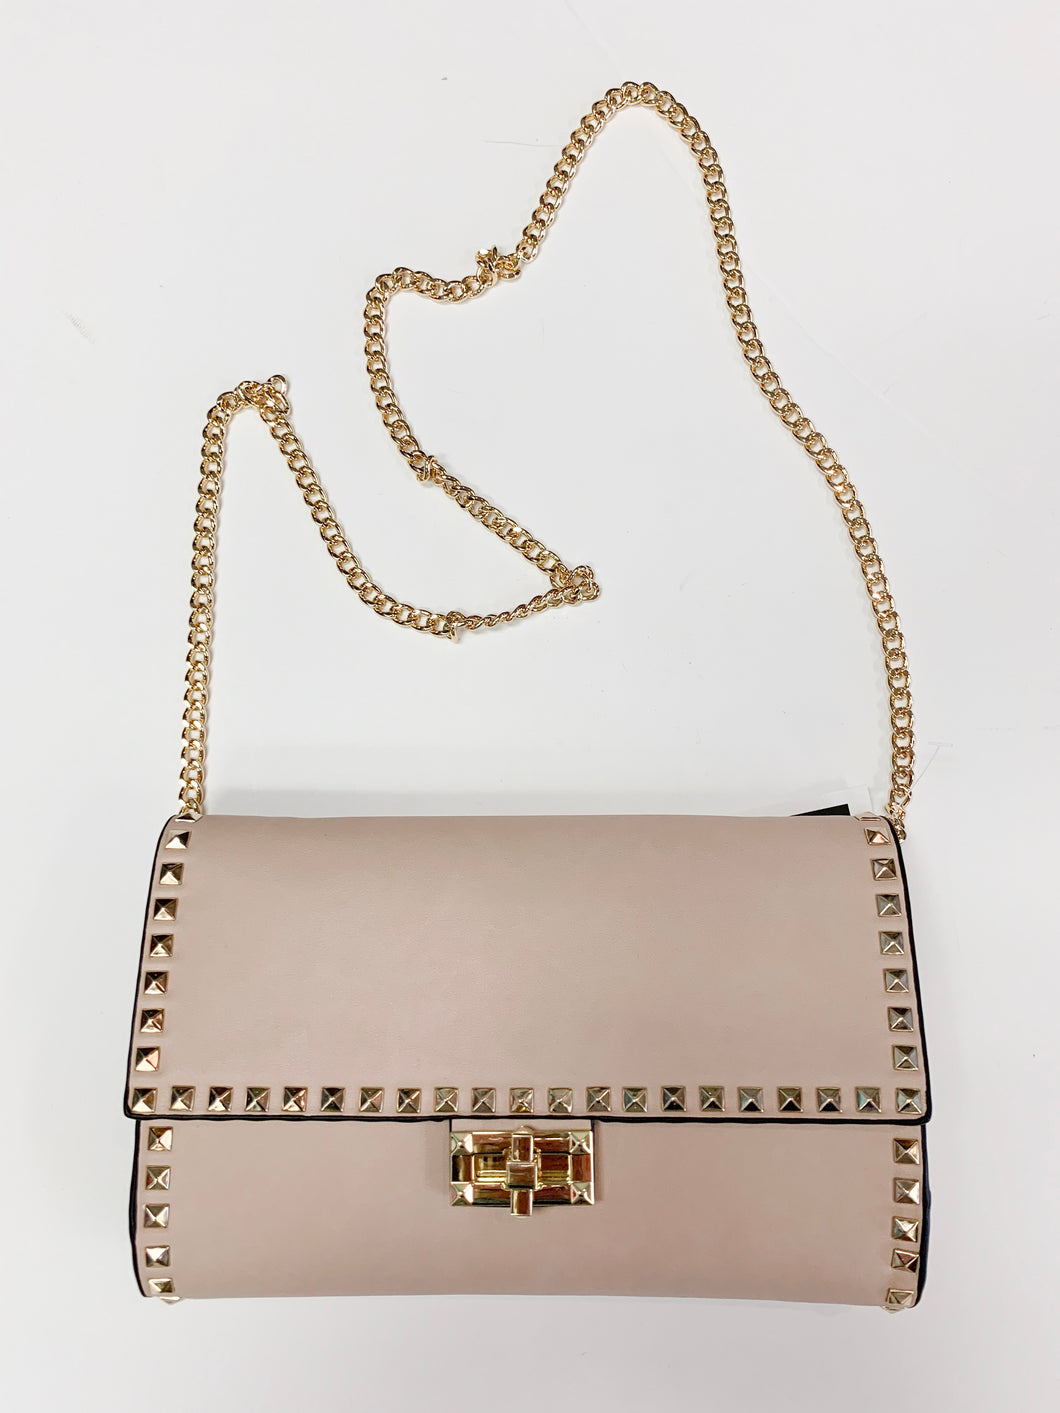 Studded Clutch/Crossbody Bag